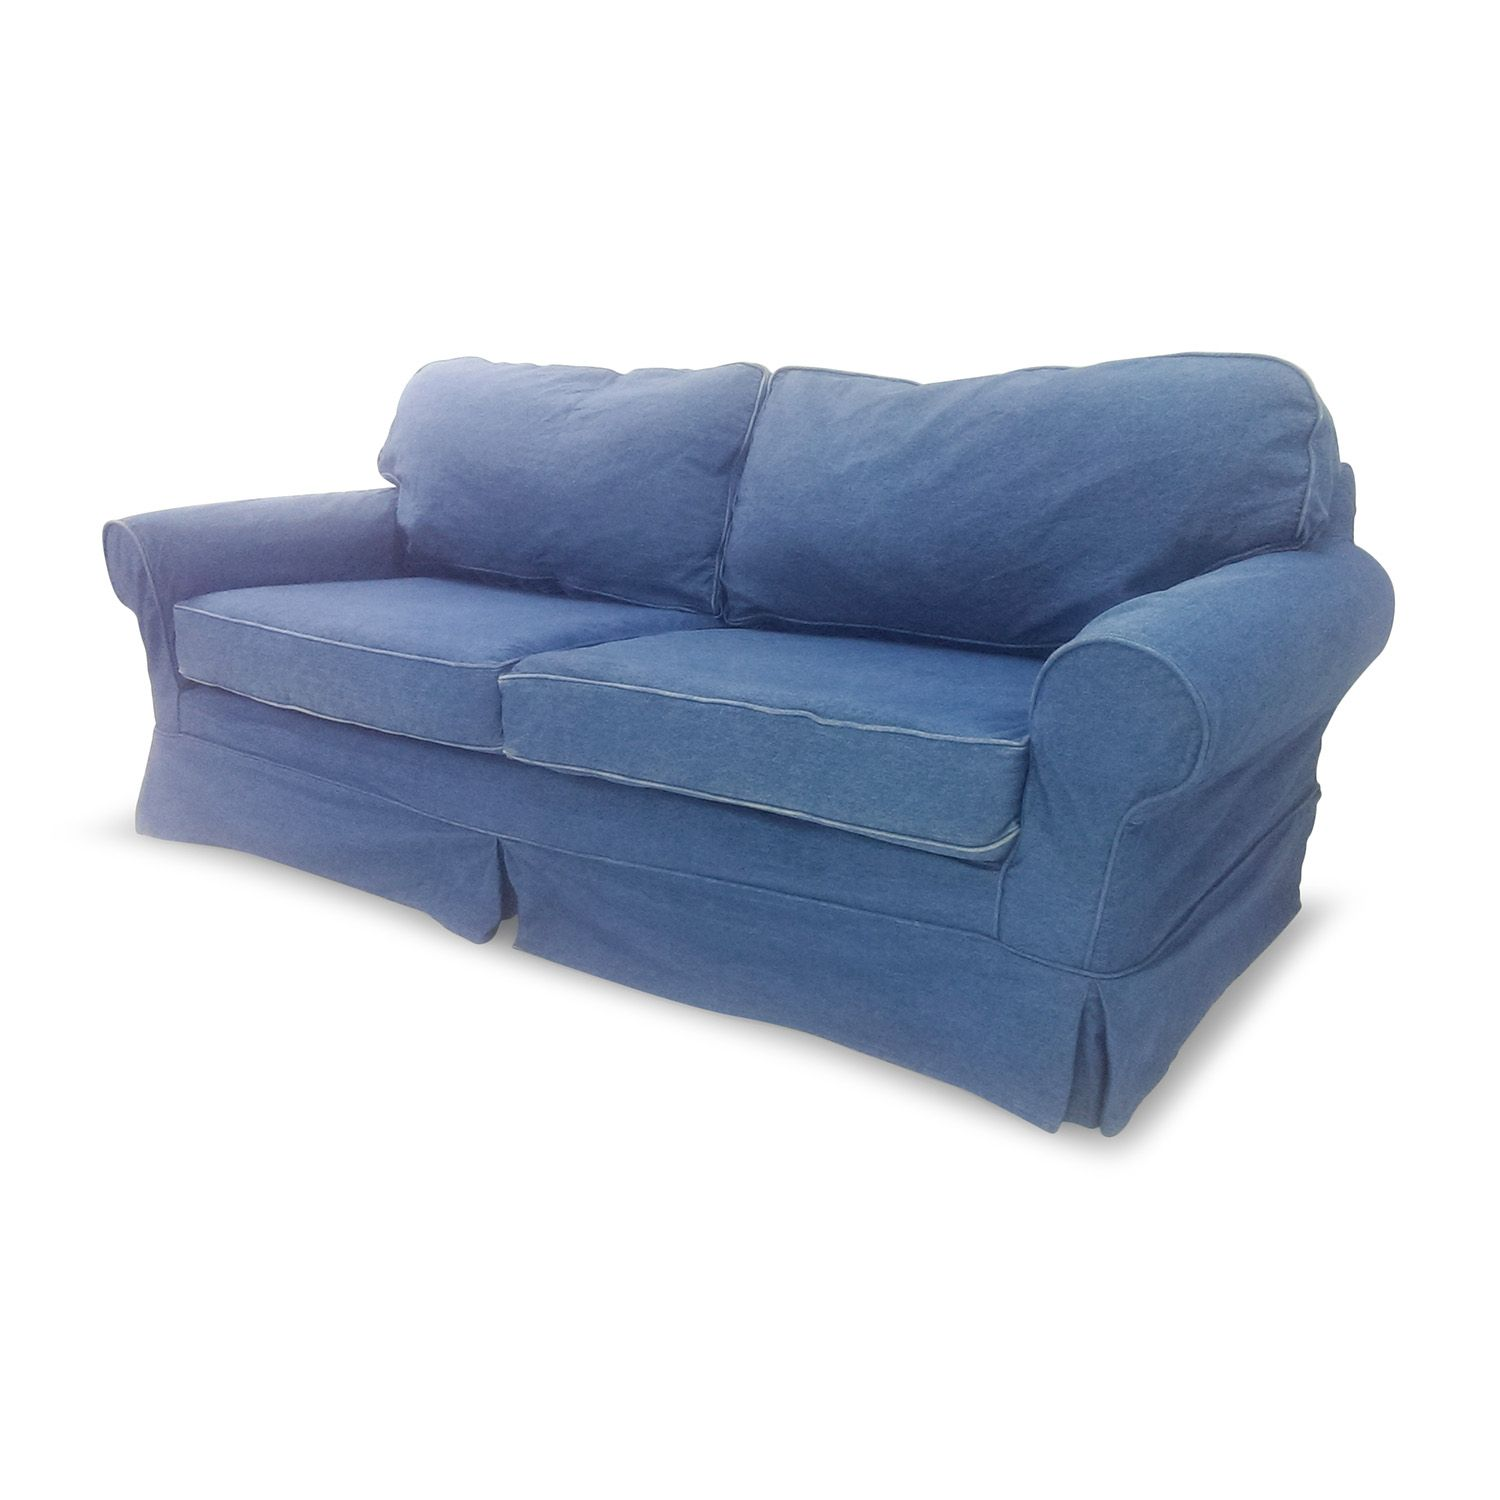 Pin On Blue Denim Couch